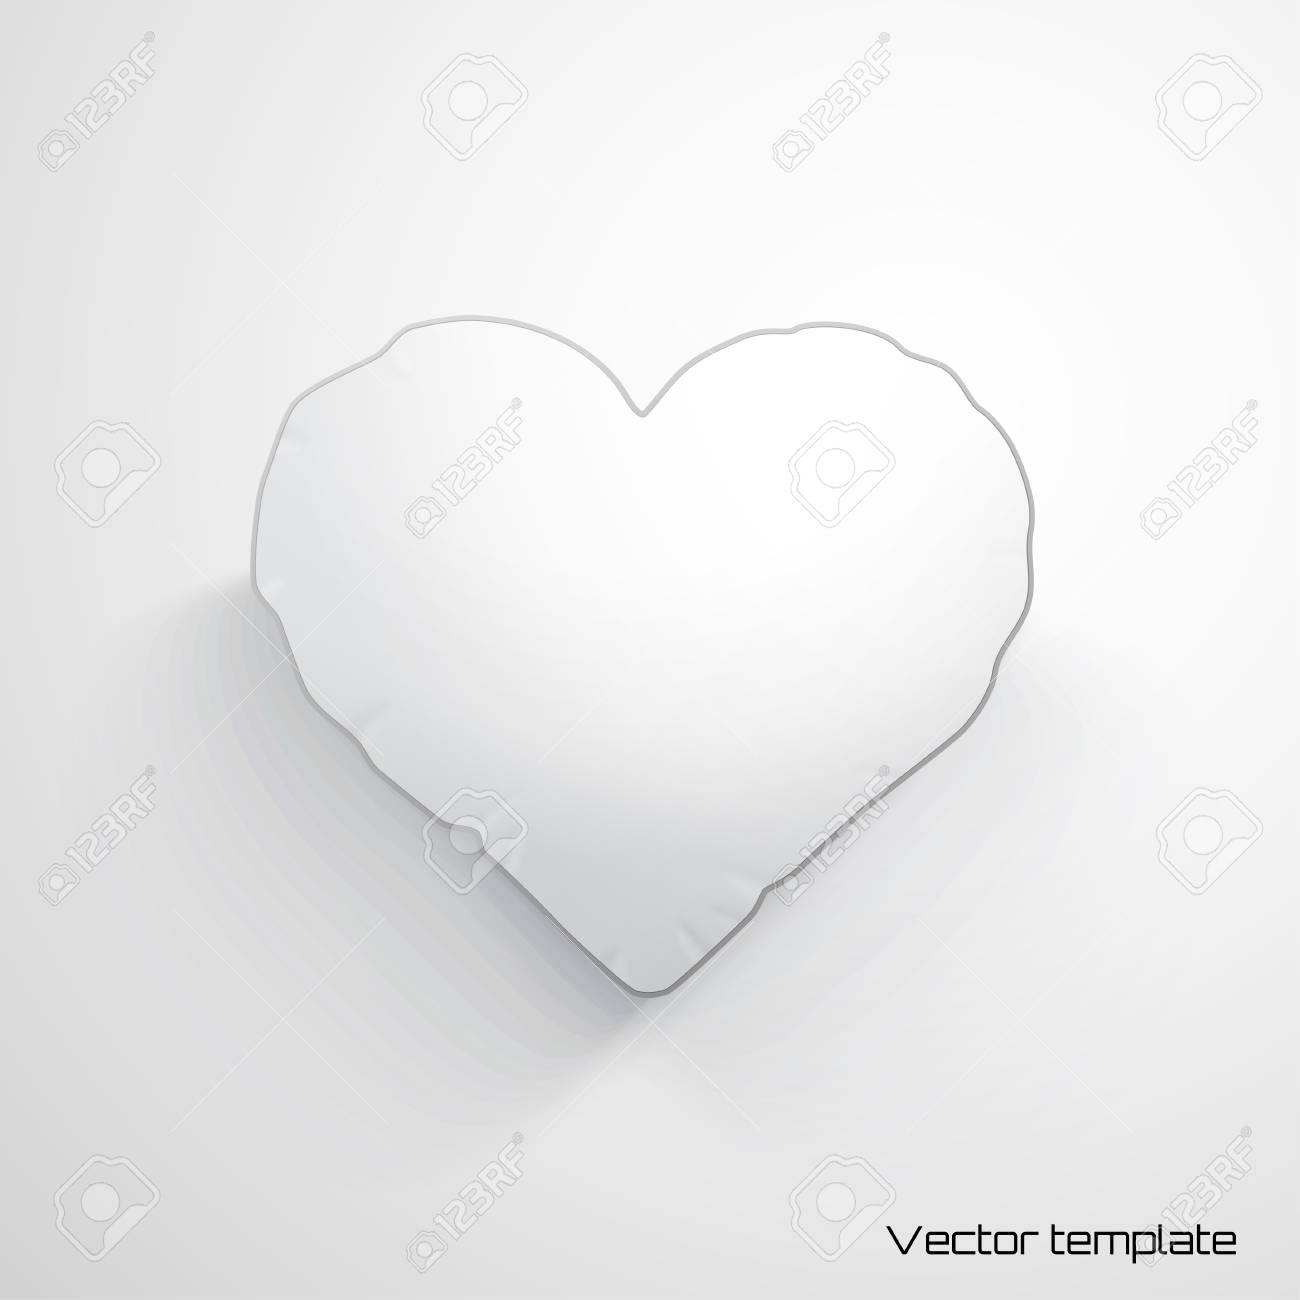 vector template white heart pillow realistic shadows royalty free